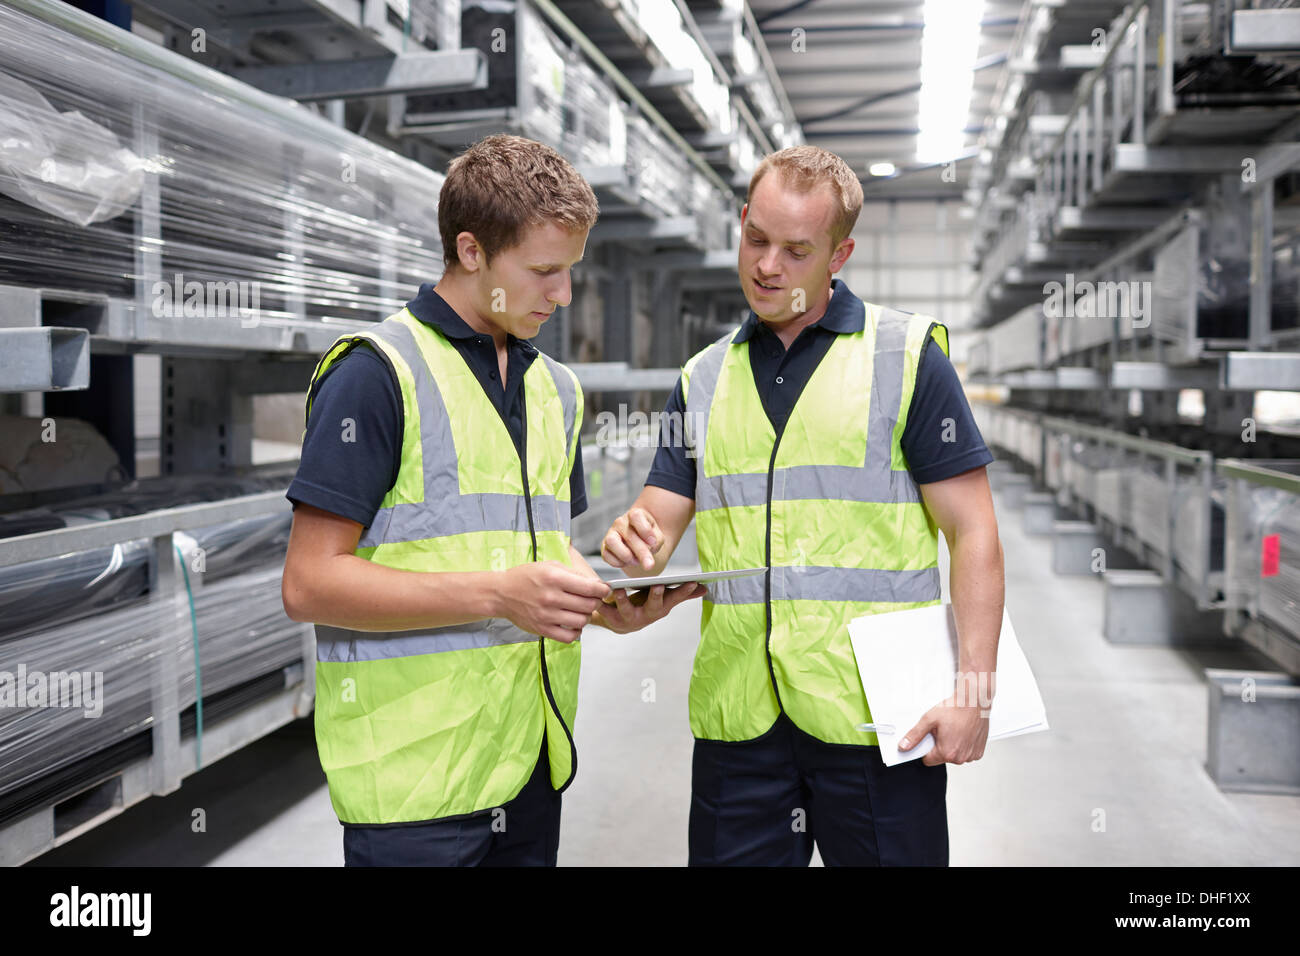 Workers checking orders in engineering warehouse - Stock Image